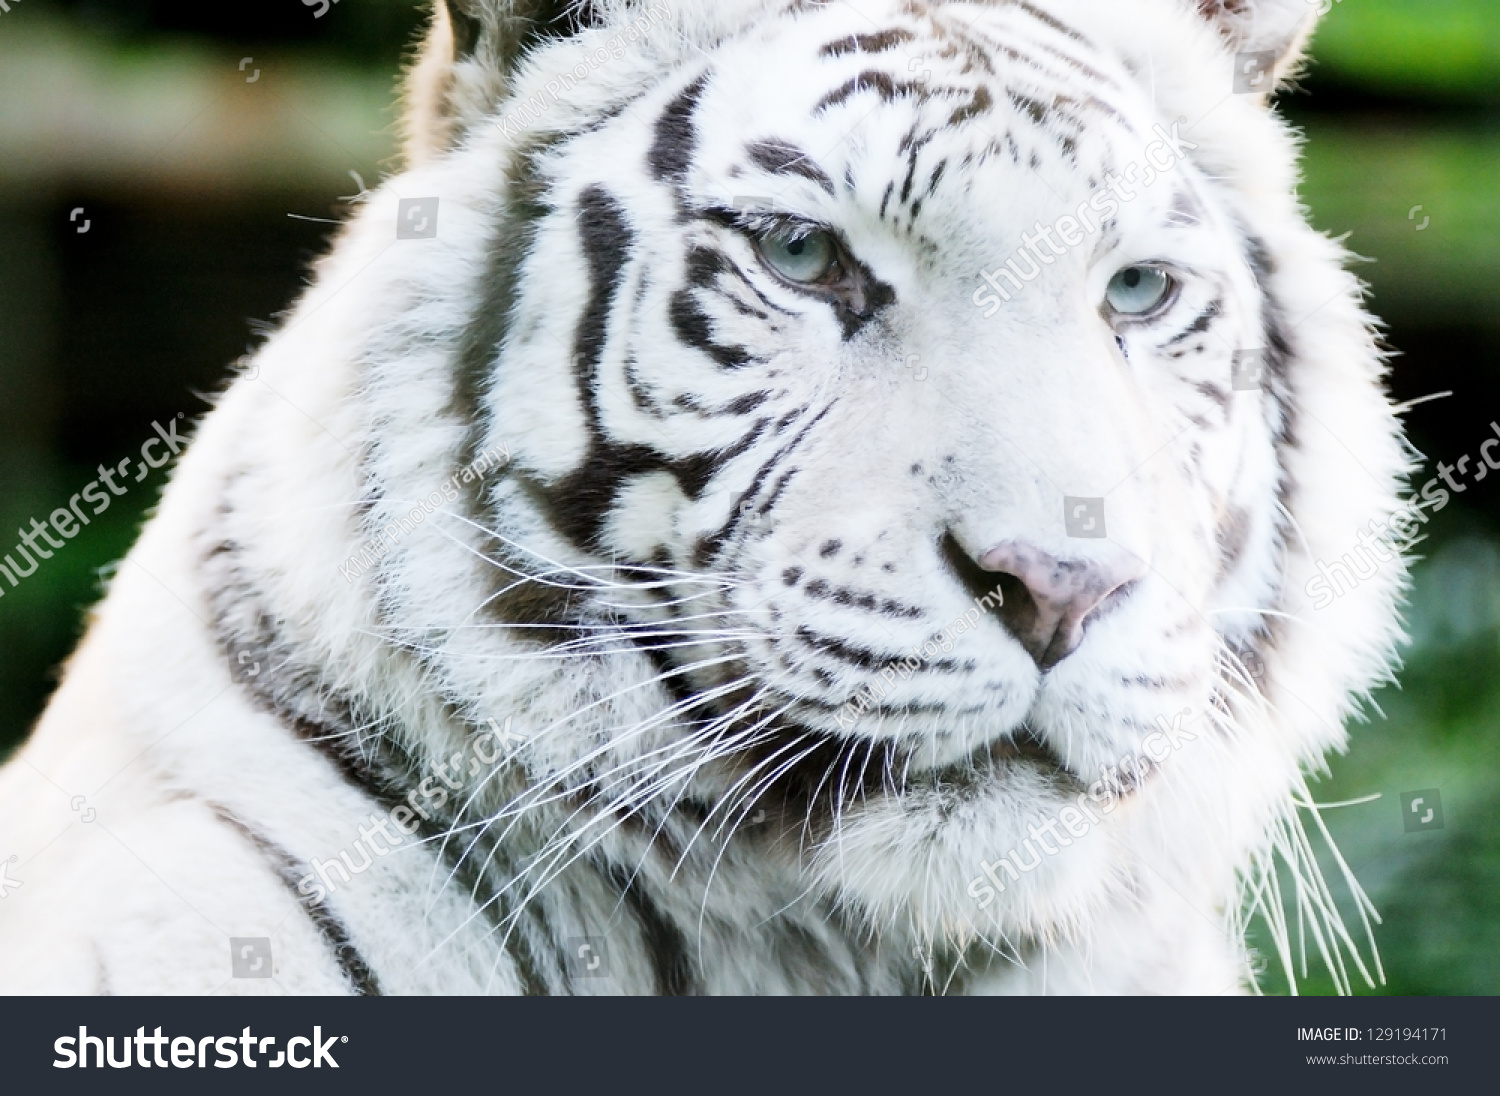 White tiger close up face - photo#28